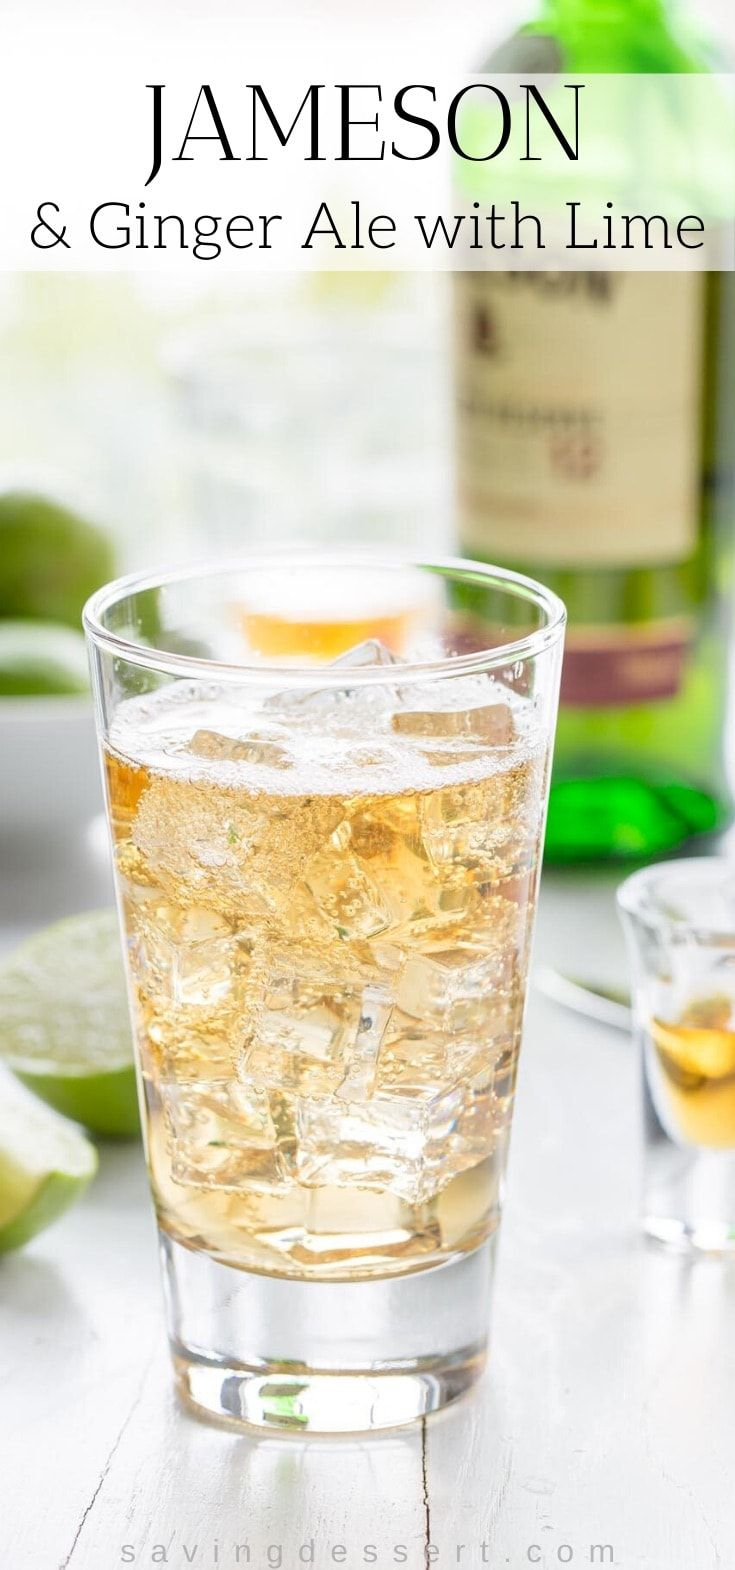 Photo of Jameson & Ginger Ale with Lime